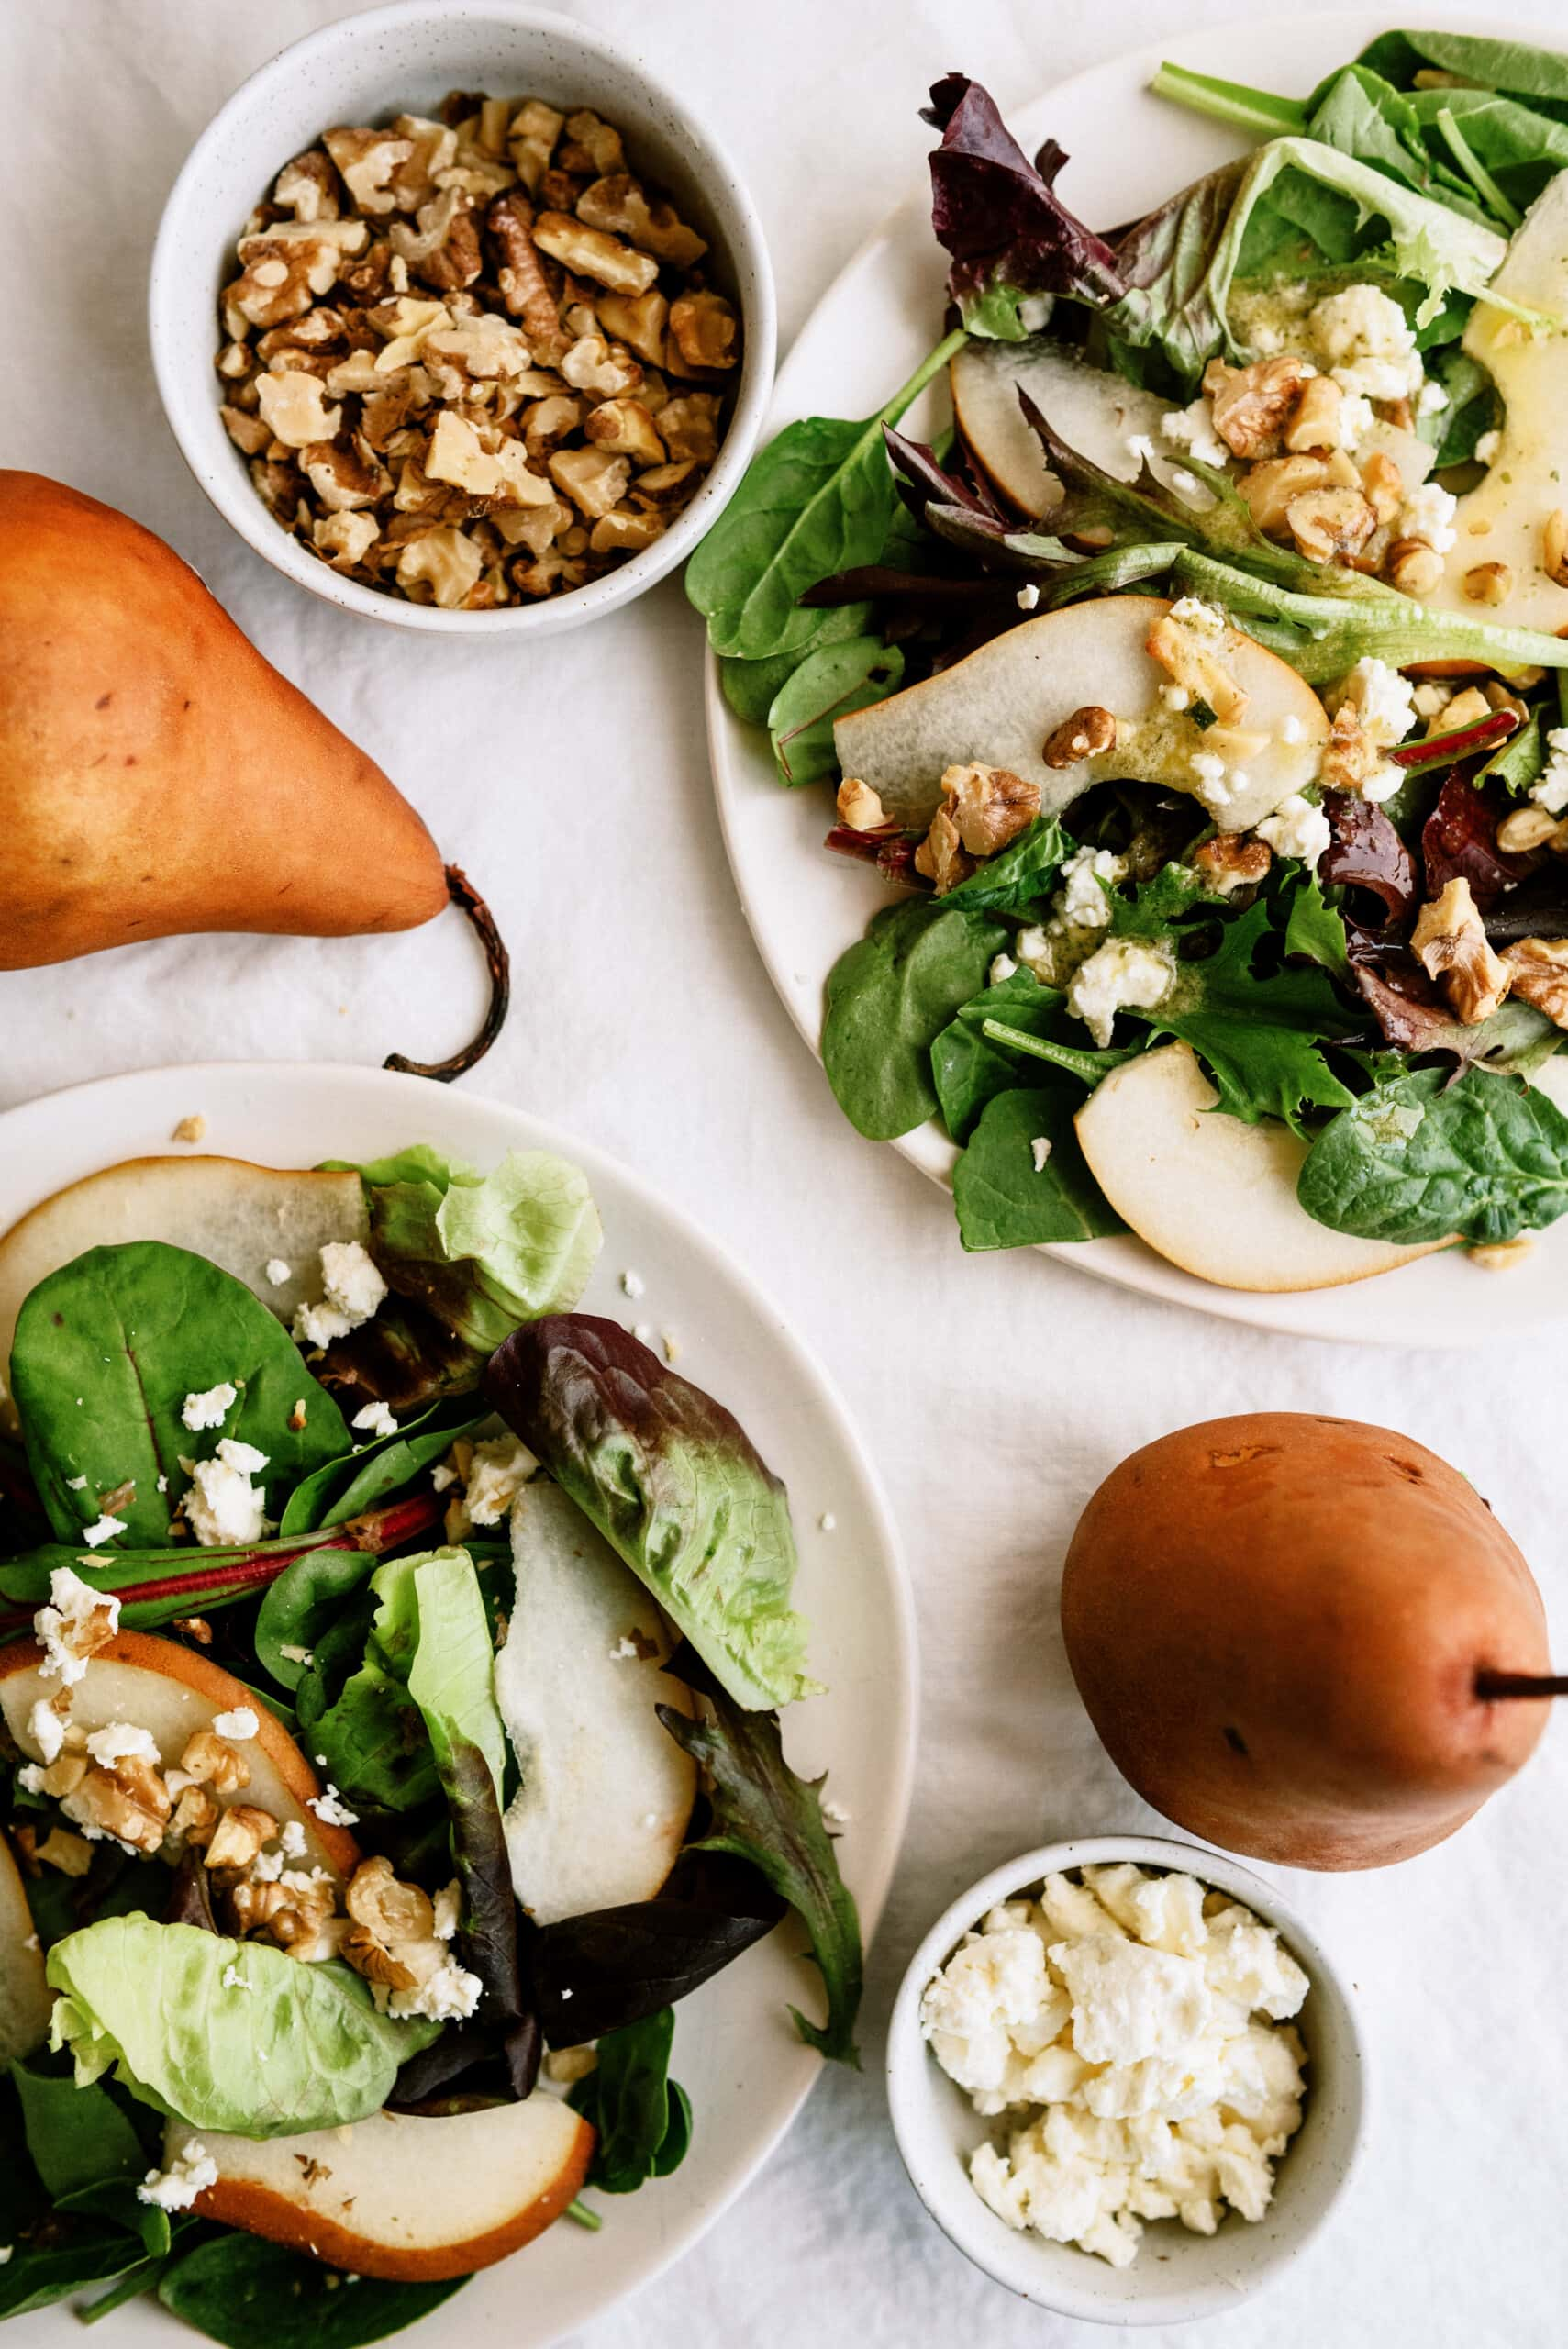 pear salads with whole pears on counter